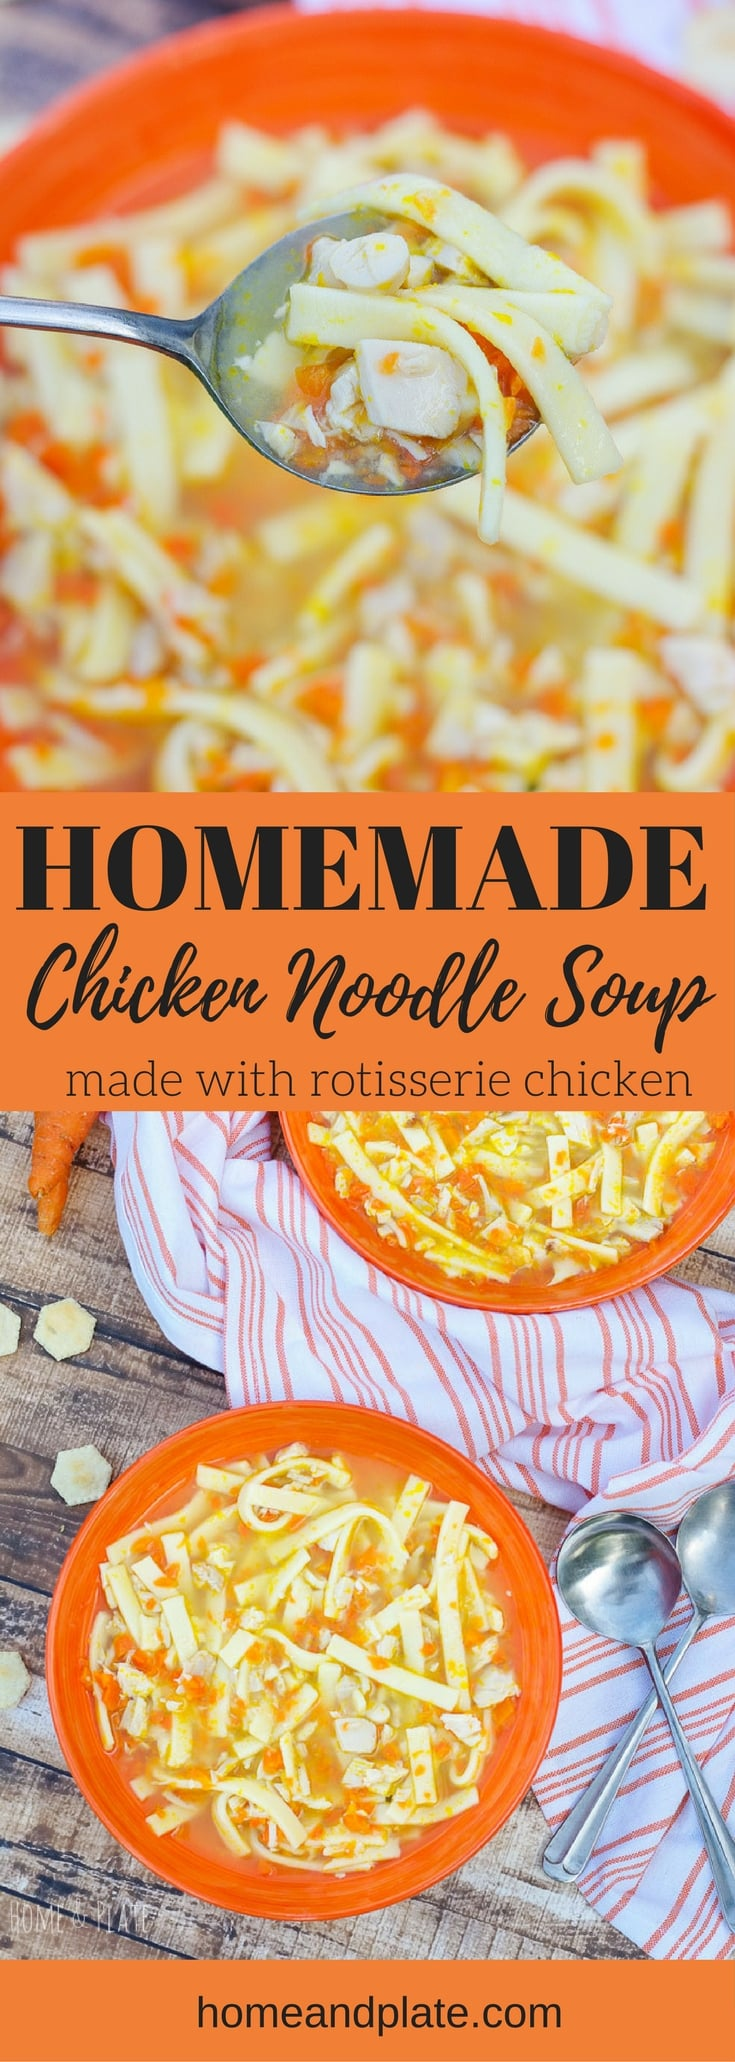 Homemade Chicken Noodle Soup | www.homeandplate.com | Whip up this easy homemade chicken noodle soup in under 30 minutes using rotisserie chicken and bone broth.